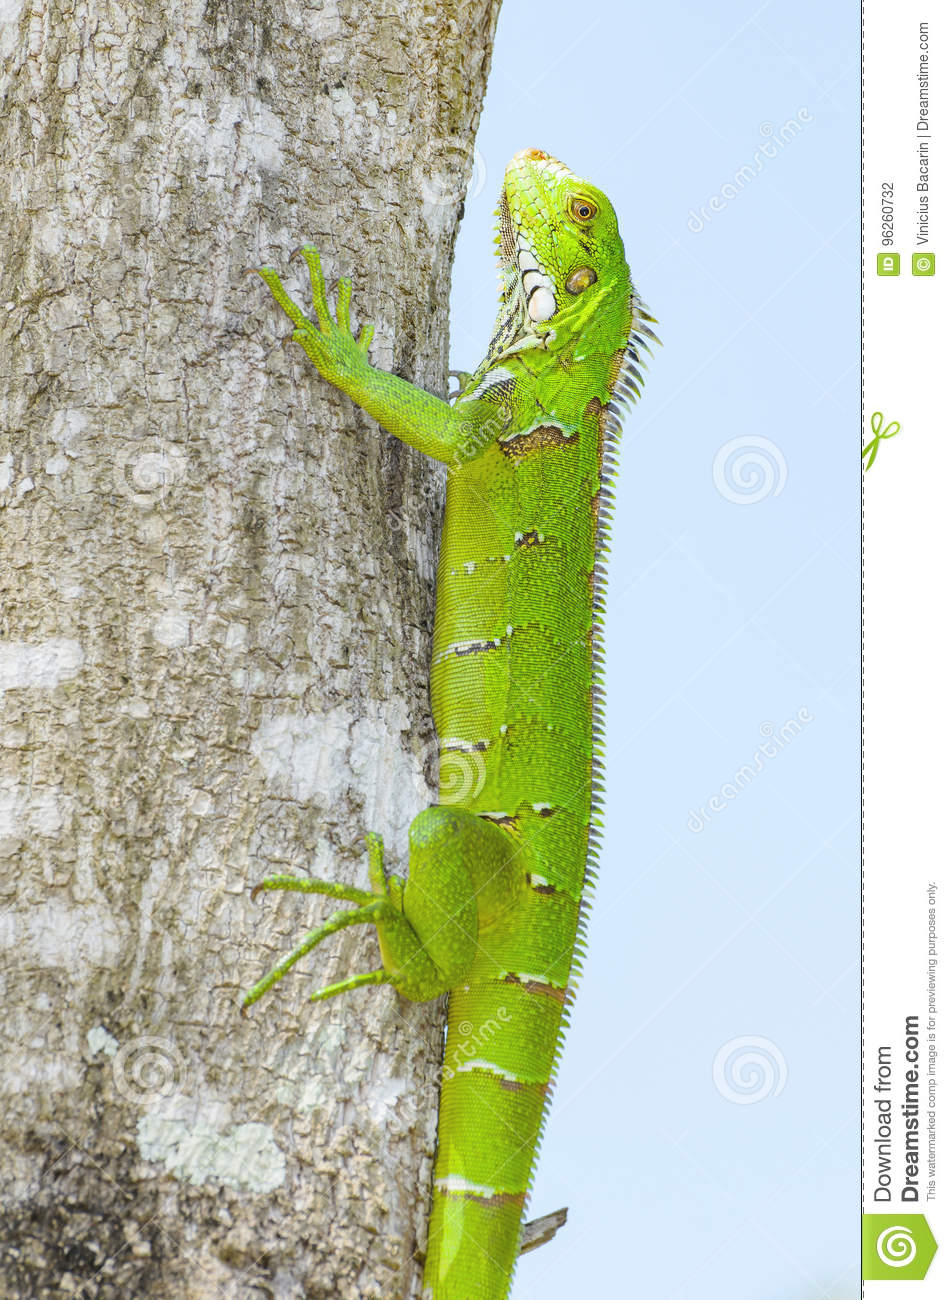 Green lizard on a tree trunk, known as Iguana.